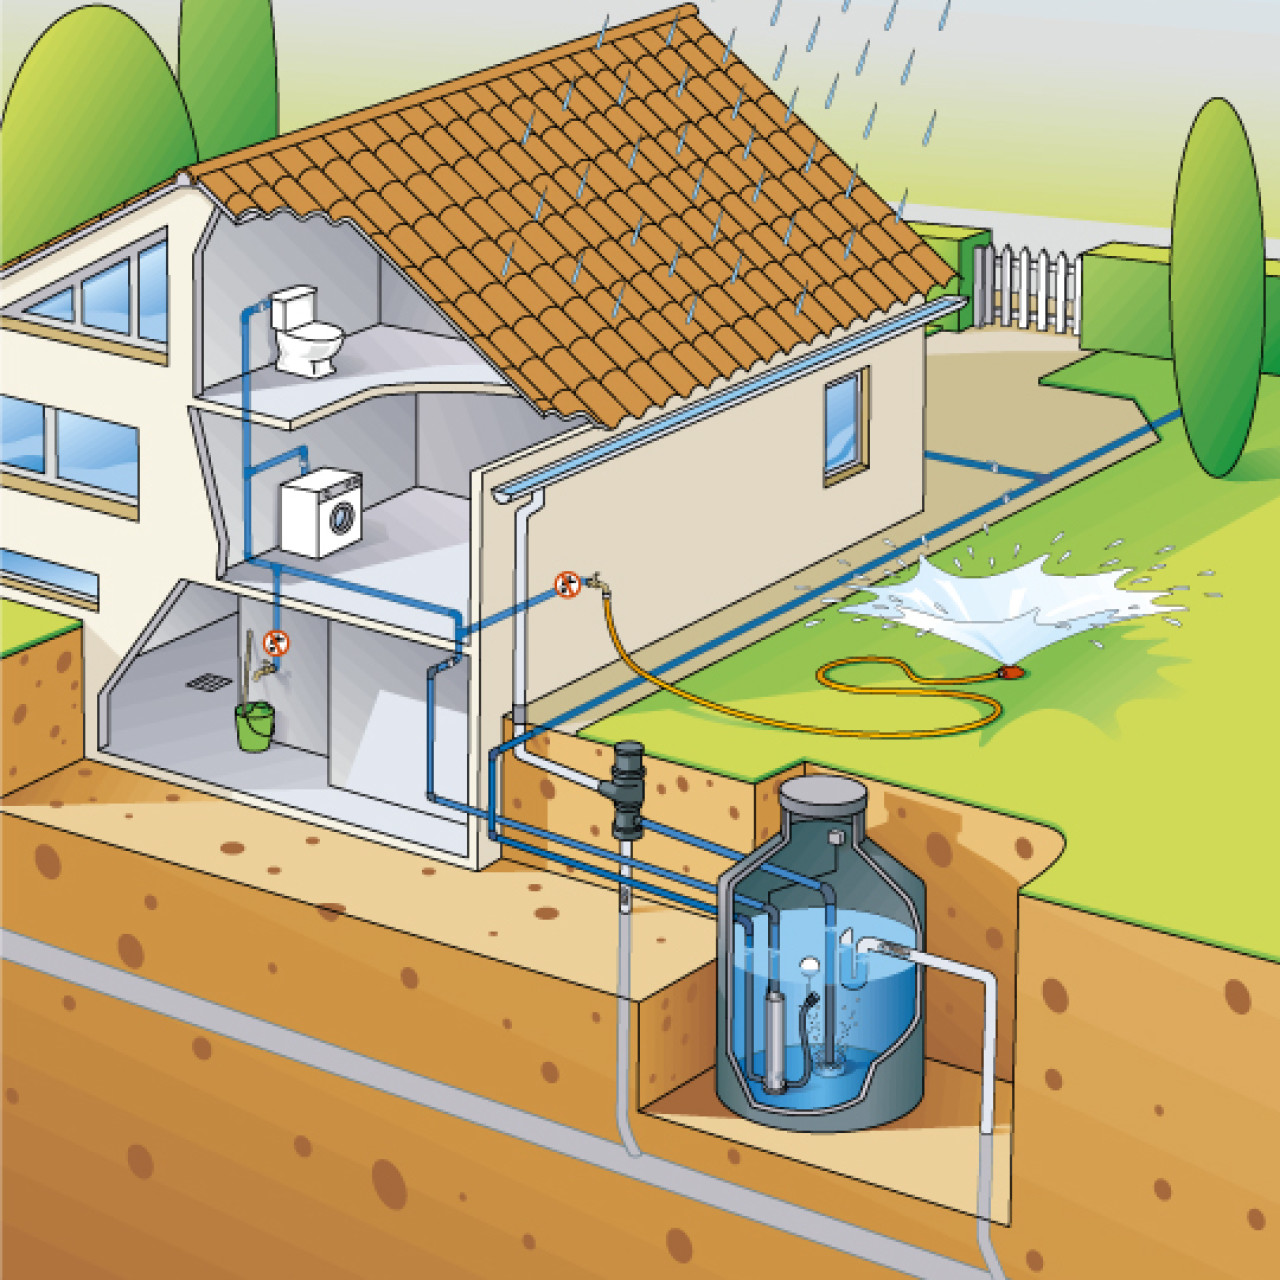 How to collect rainwater?